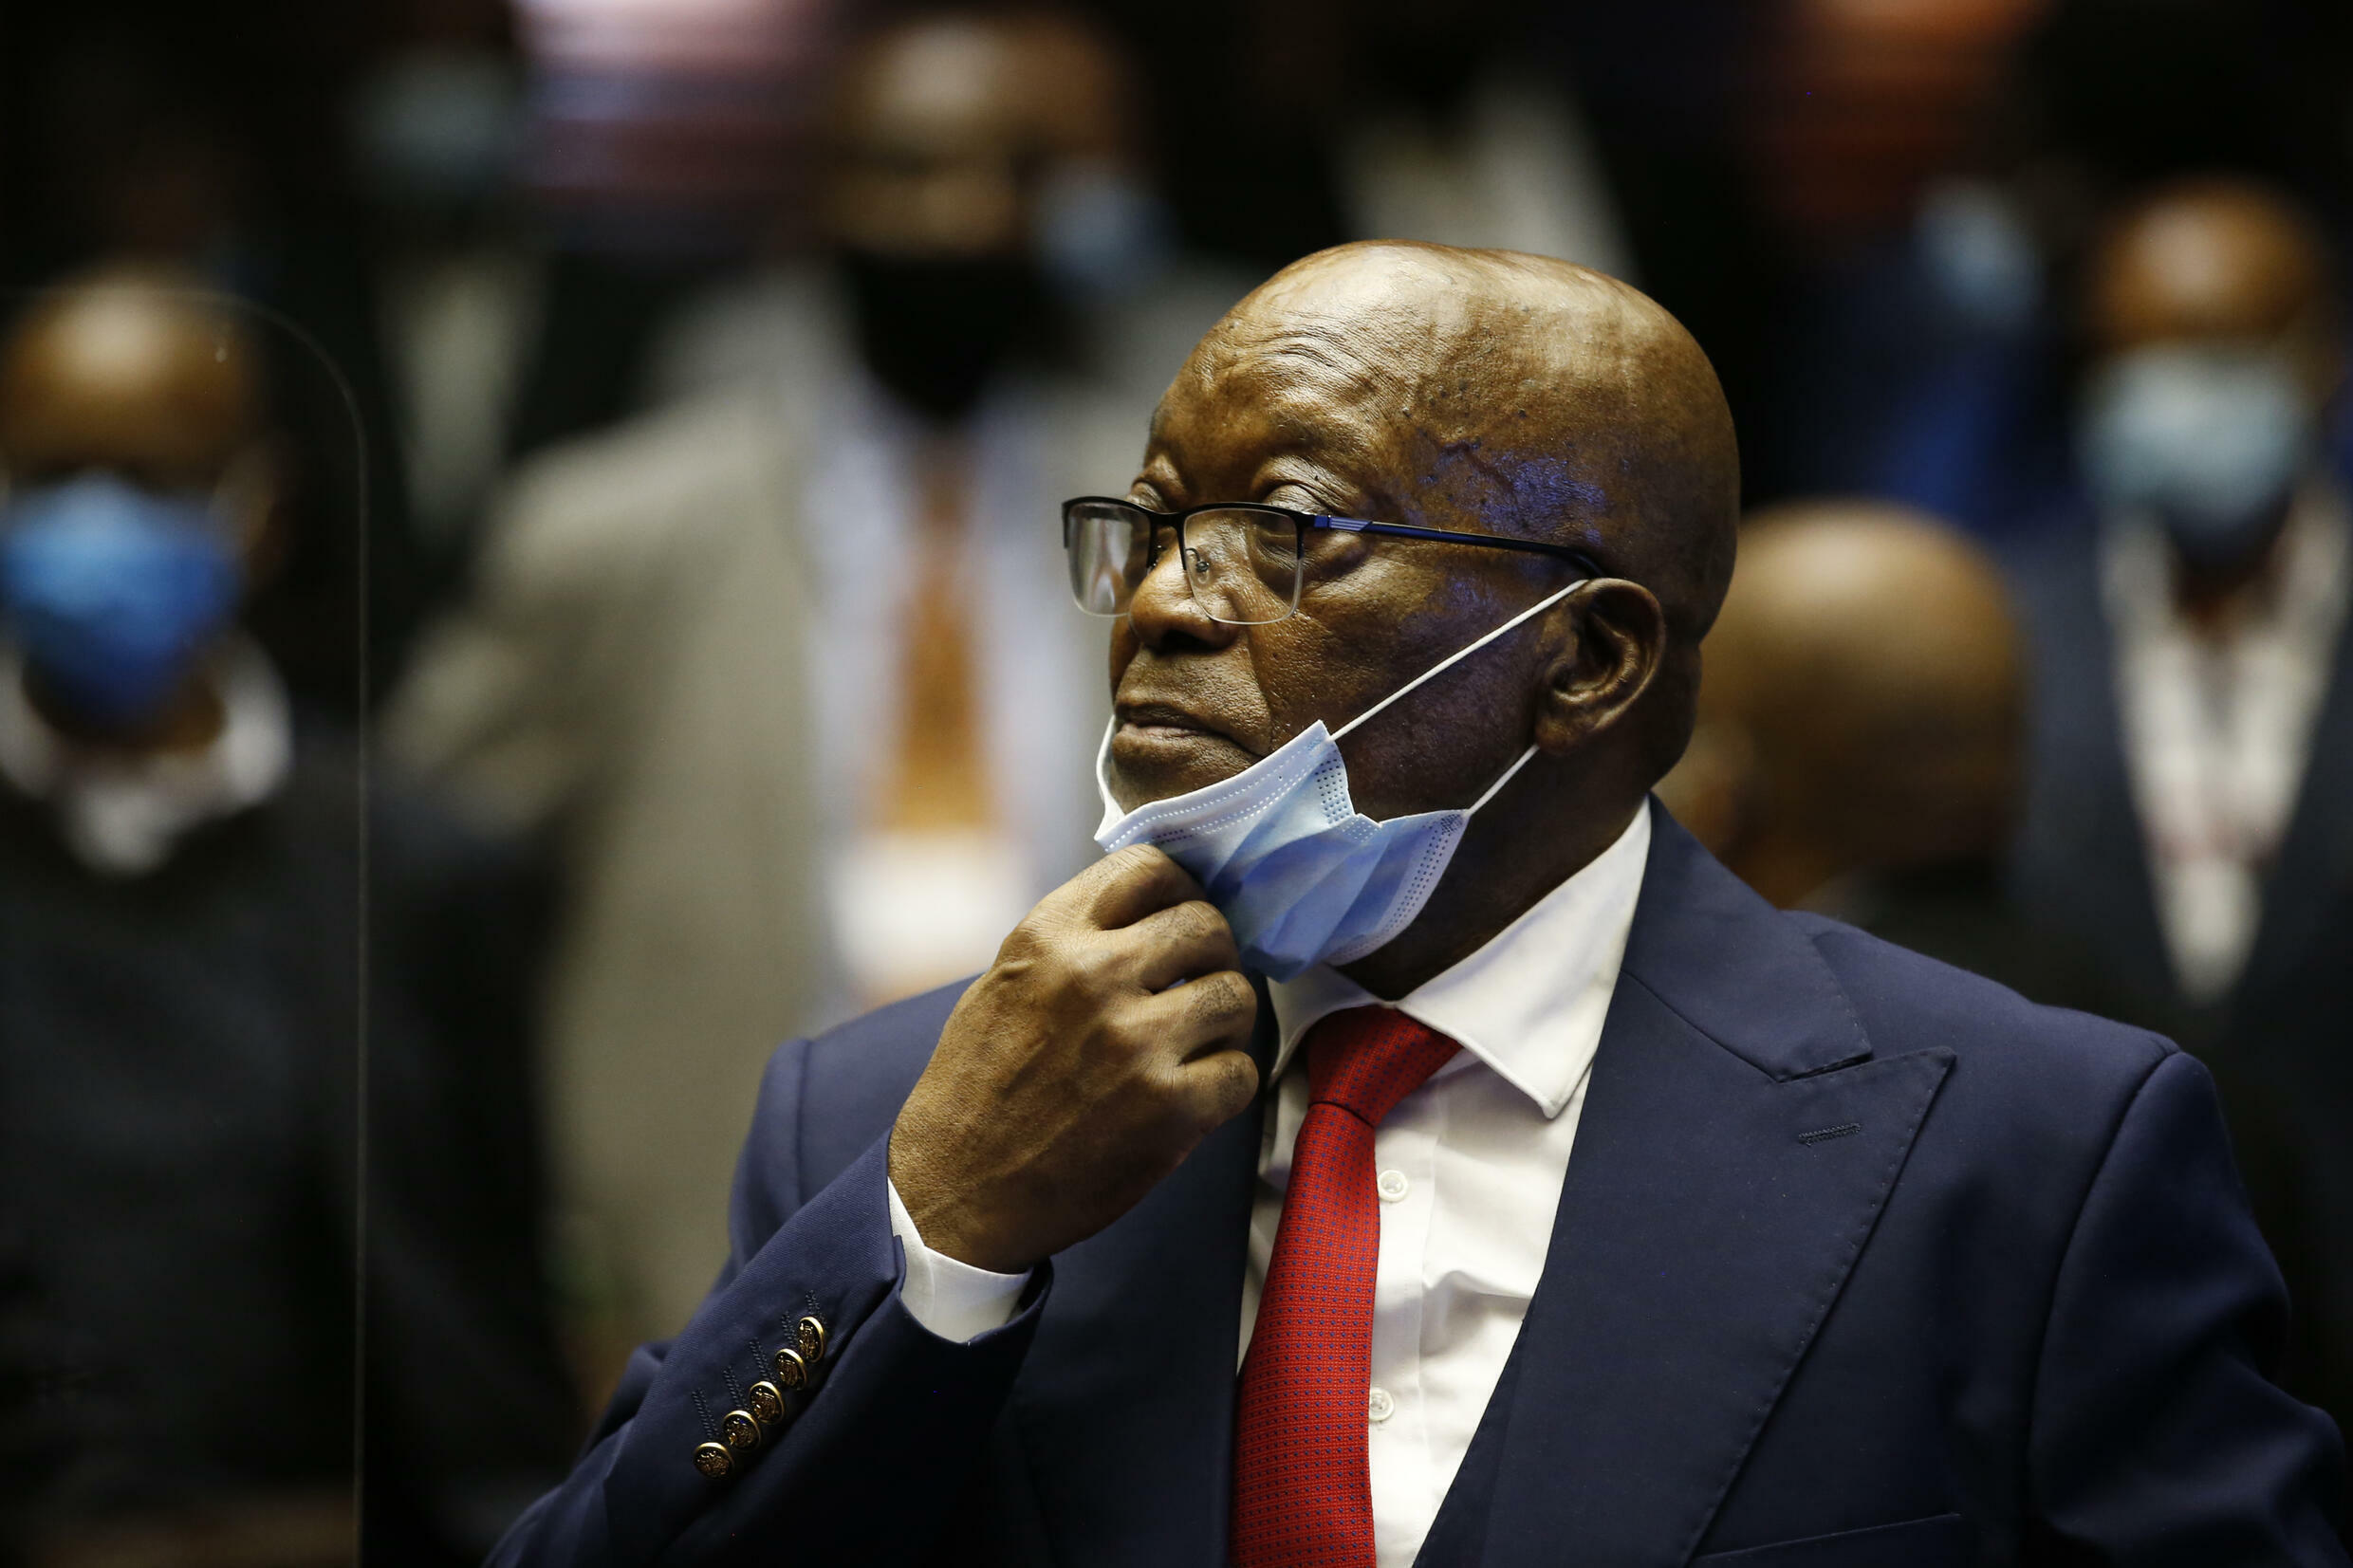 Former South Africa president Jacob Zuma in court in Pietermaritzburg, 26 May, 2021